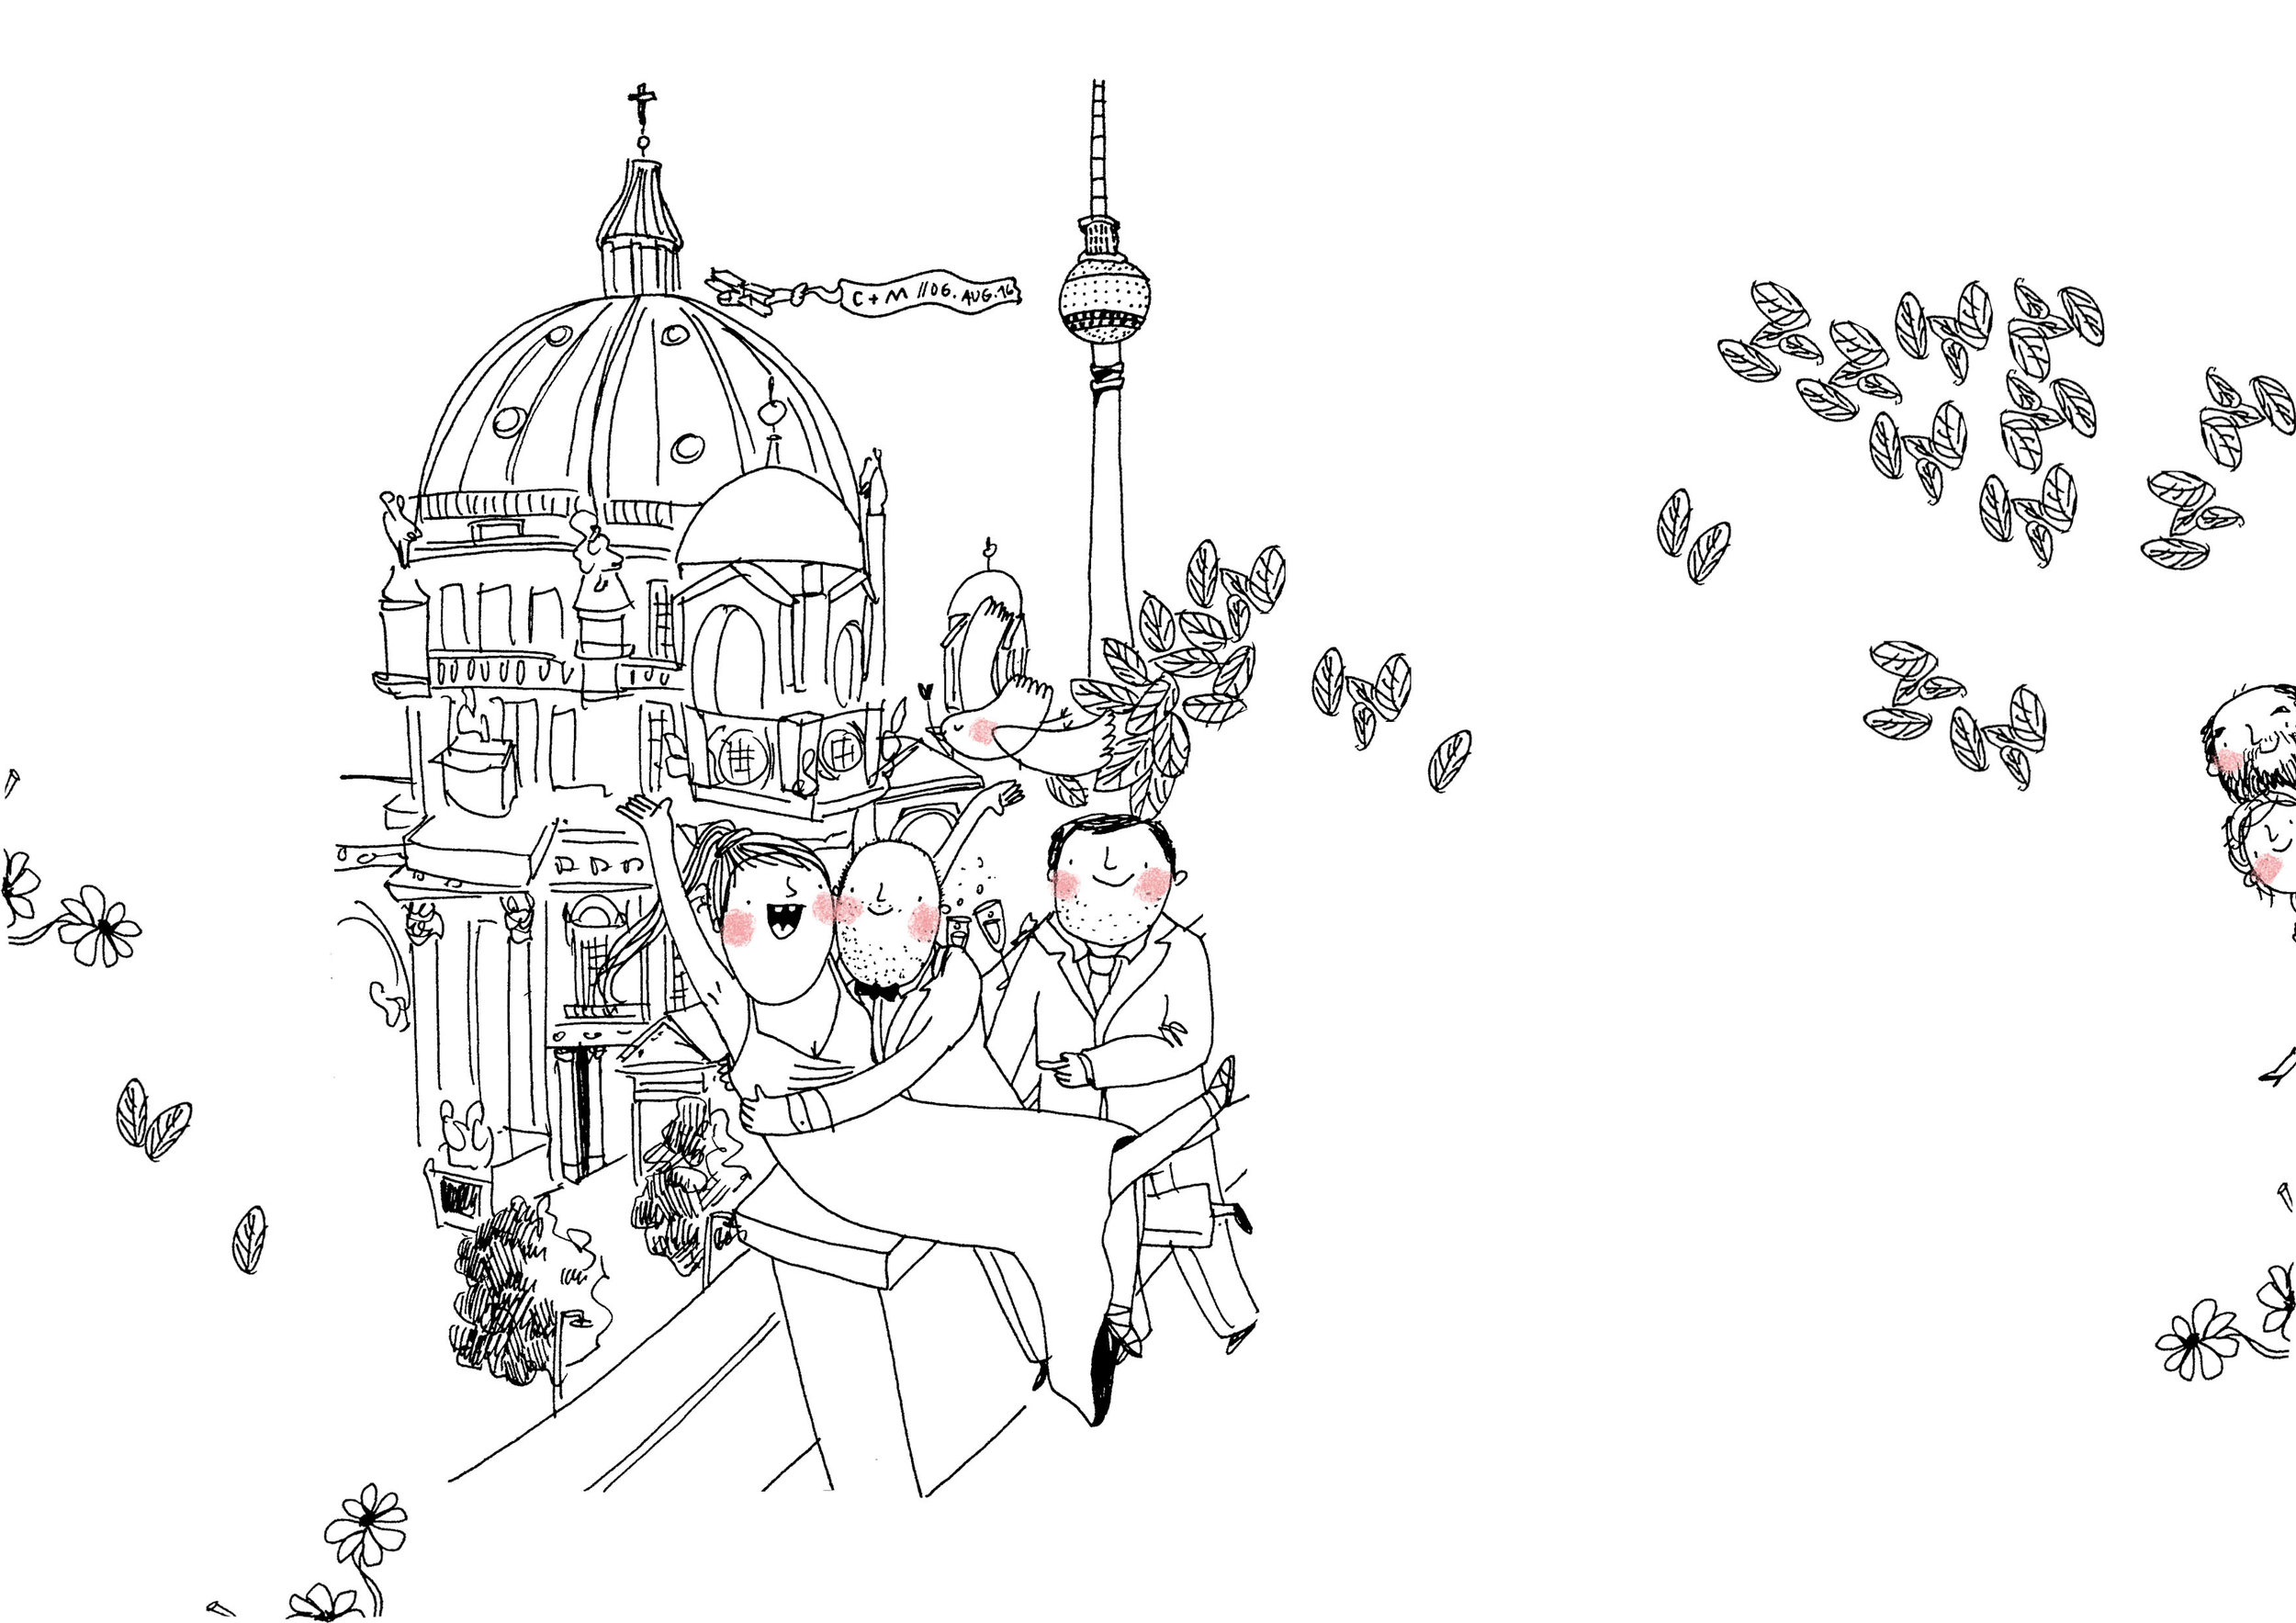 IH_illustration_berlinerdom.jpg